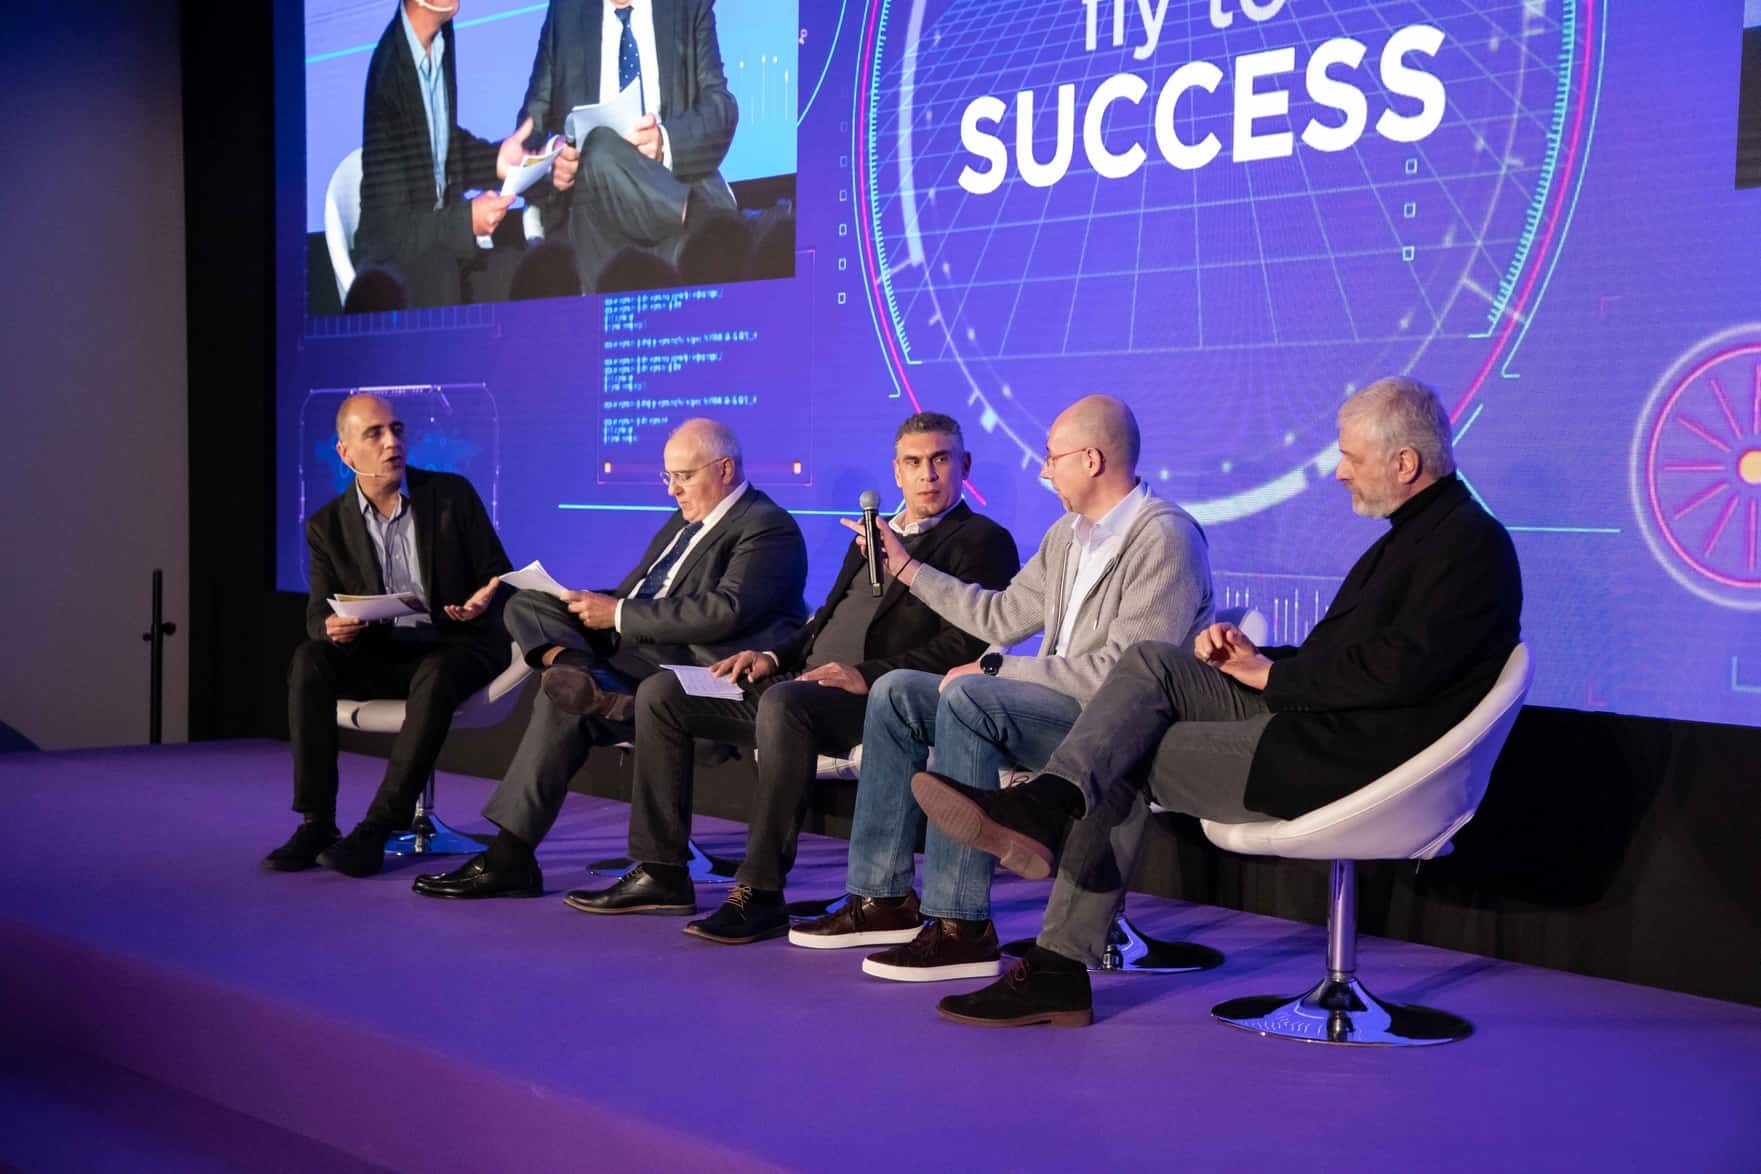 Grant Thornton leader share story at a trade show